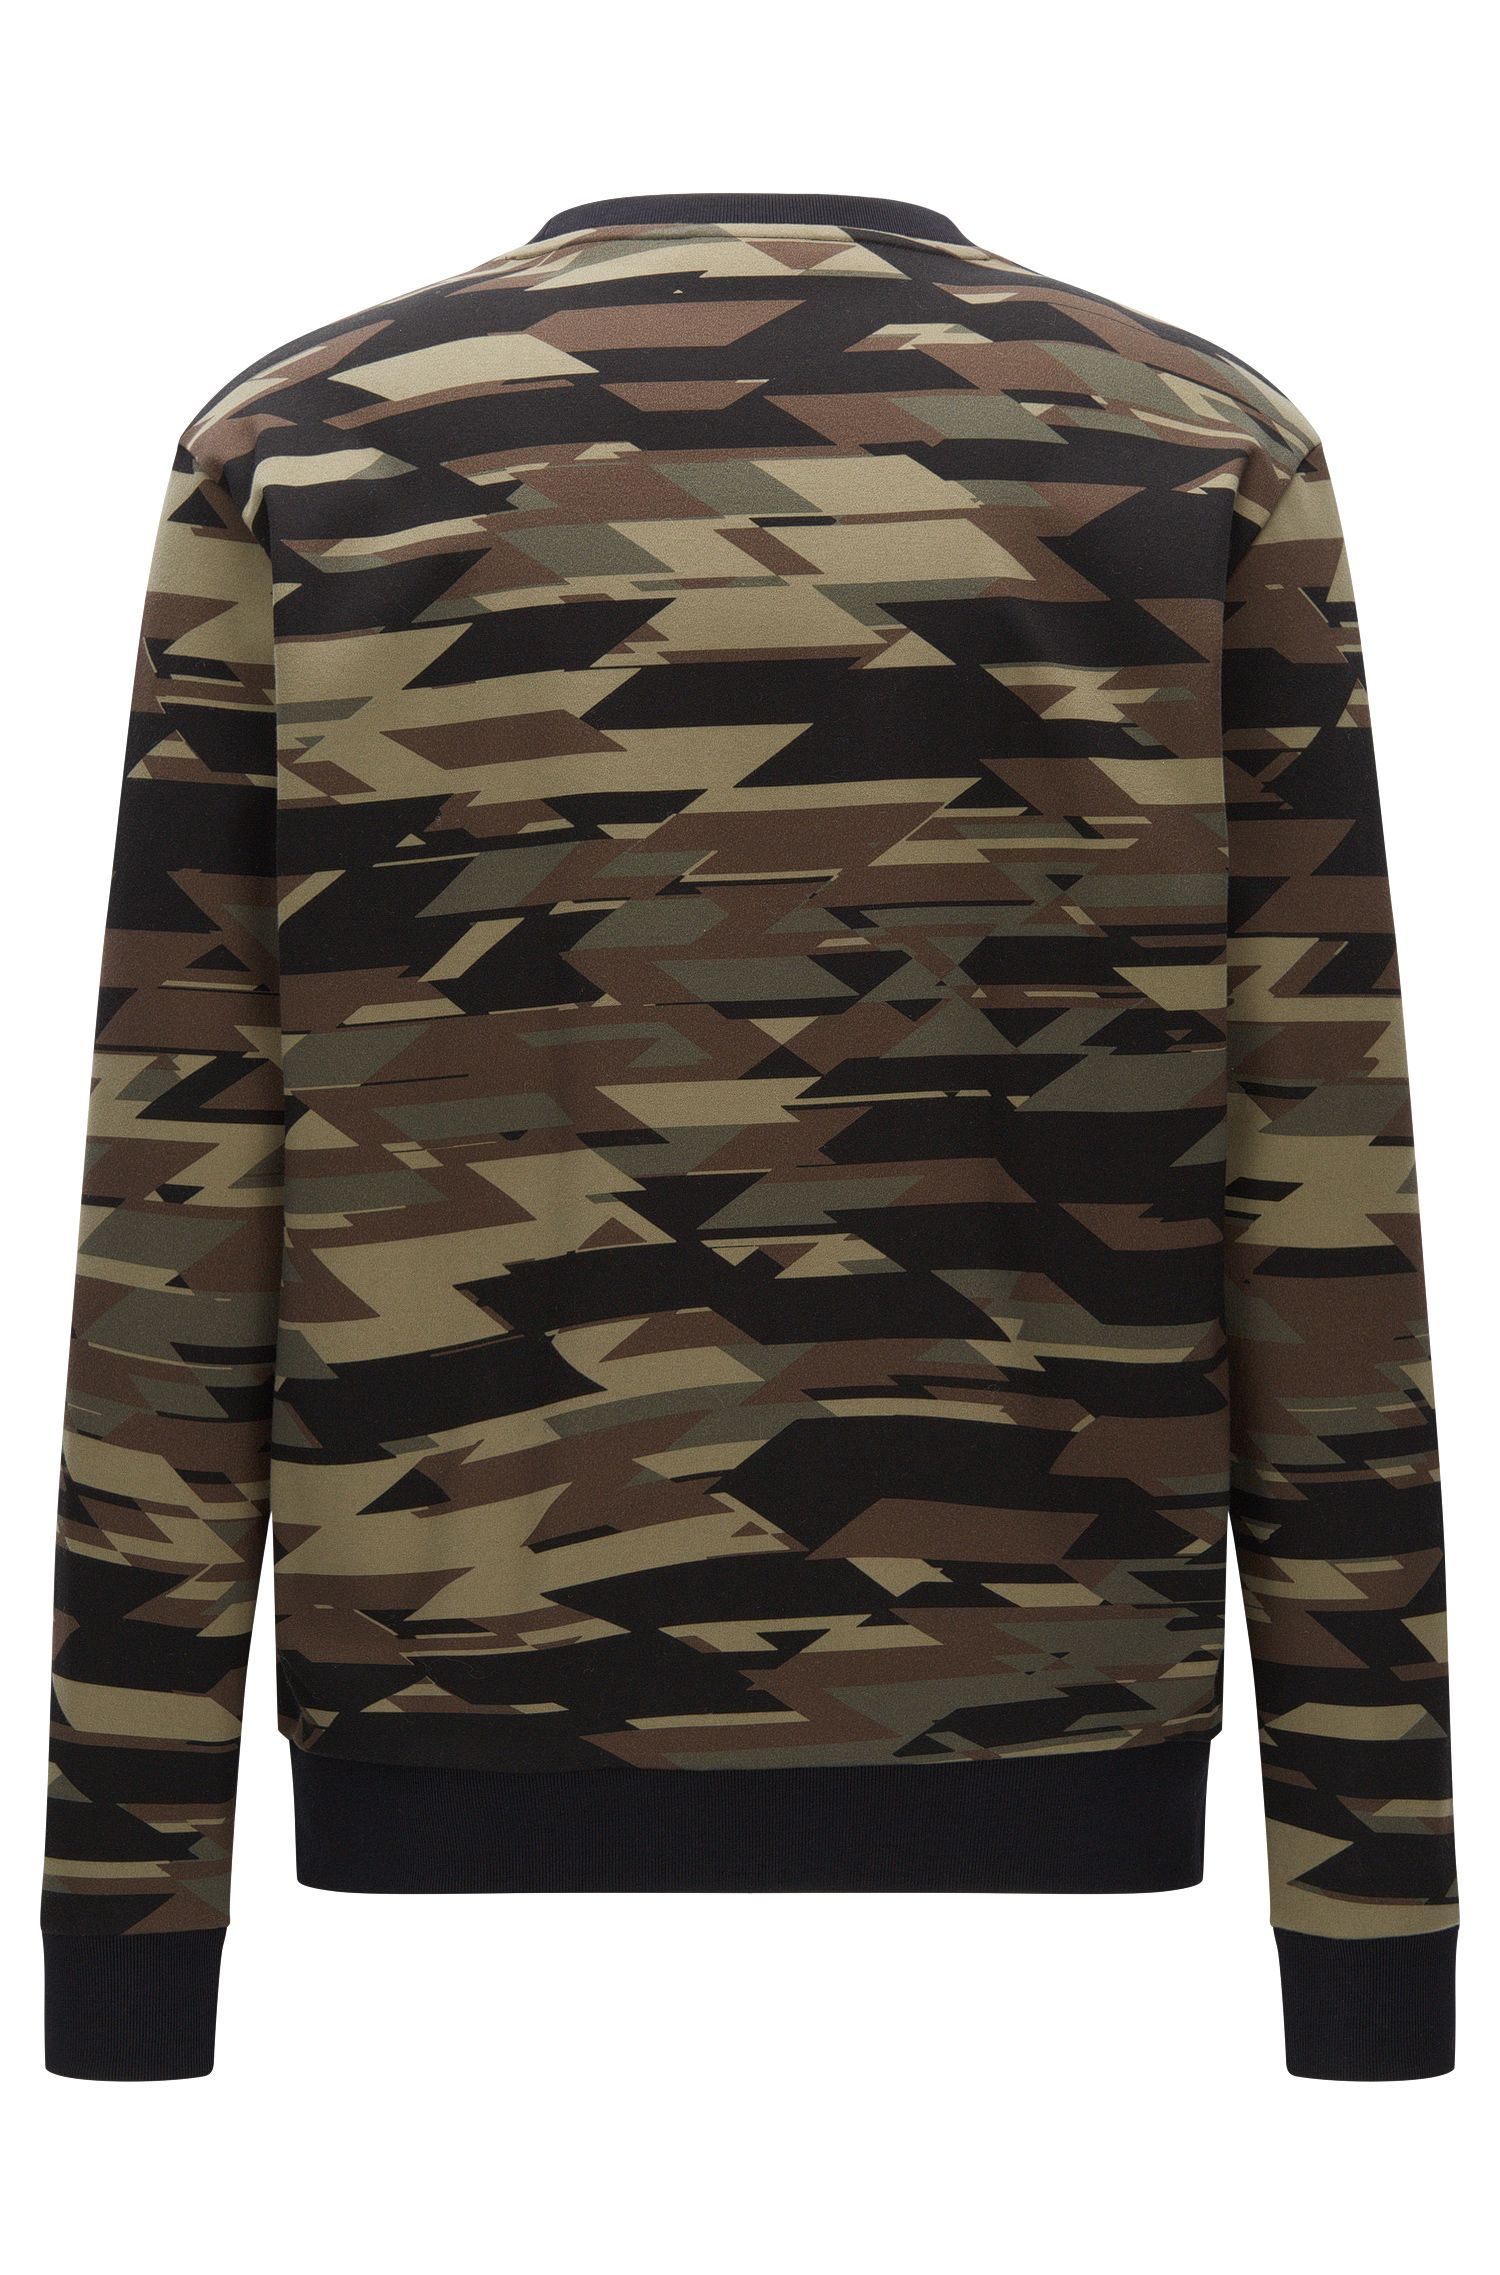 Camouflage Cotton Sweatershirt | Driggs